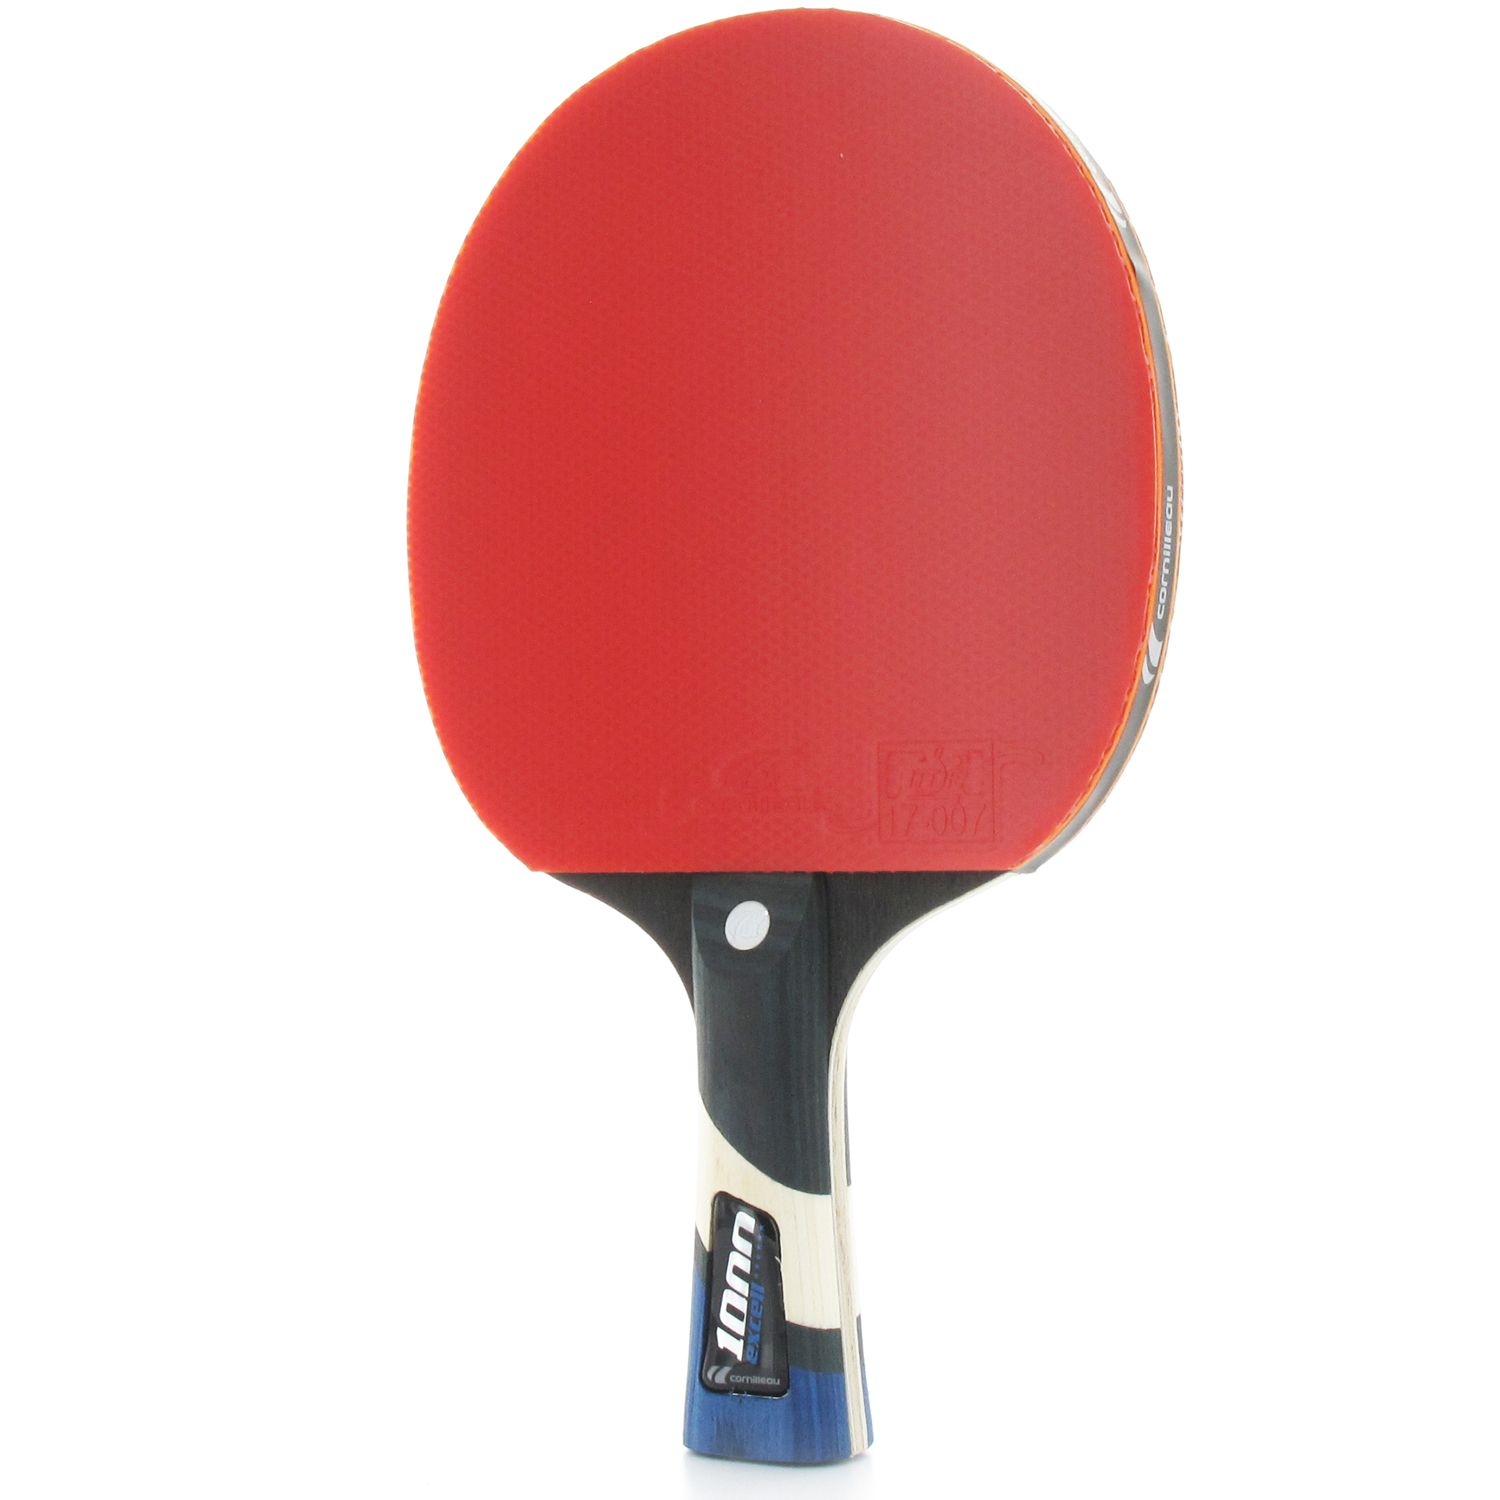 Cornilleau excell 1000 carbon phs performa 1 table tennis bat - Cornilleau table tennis bats ...